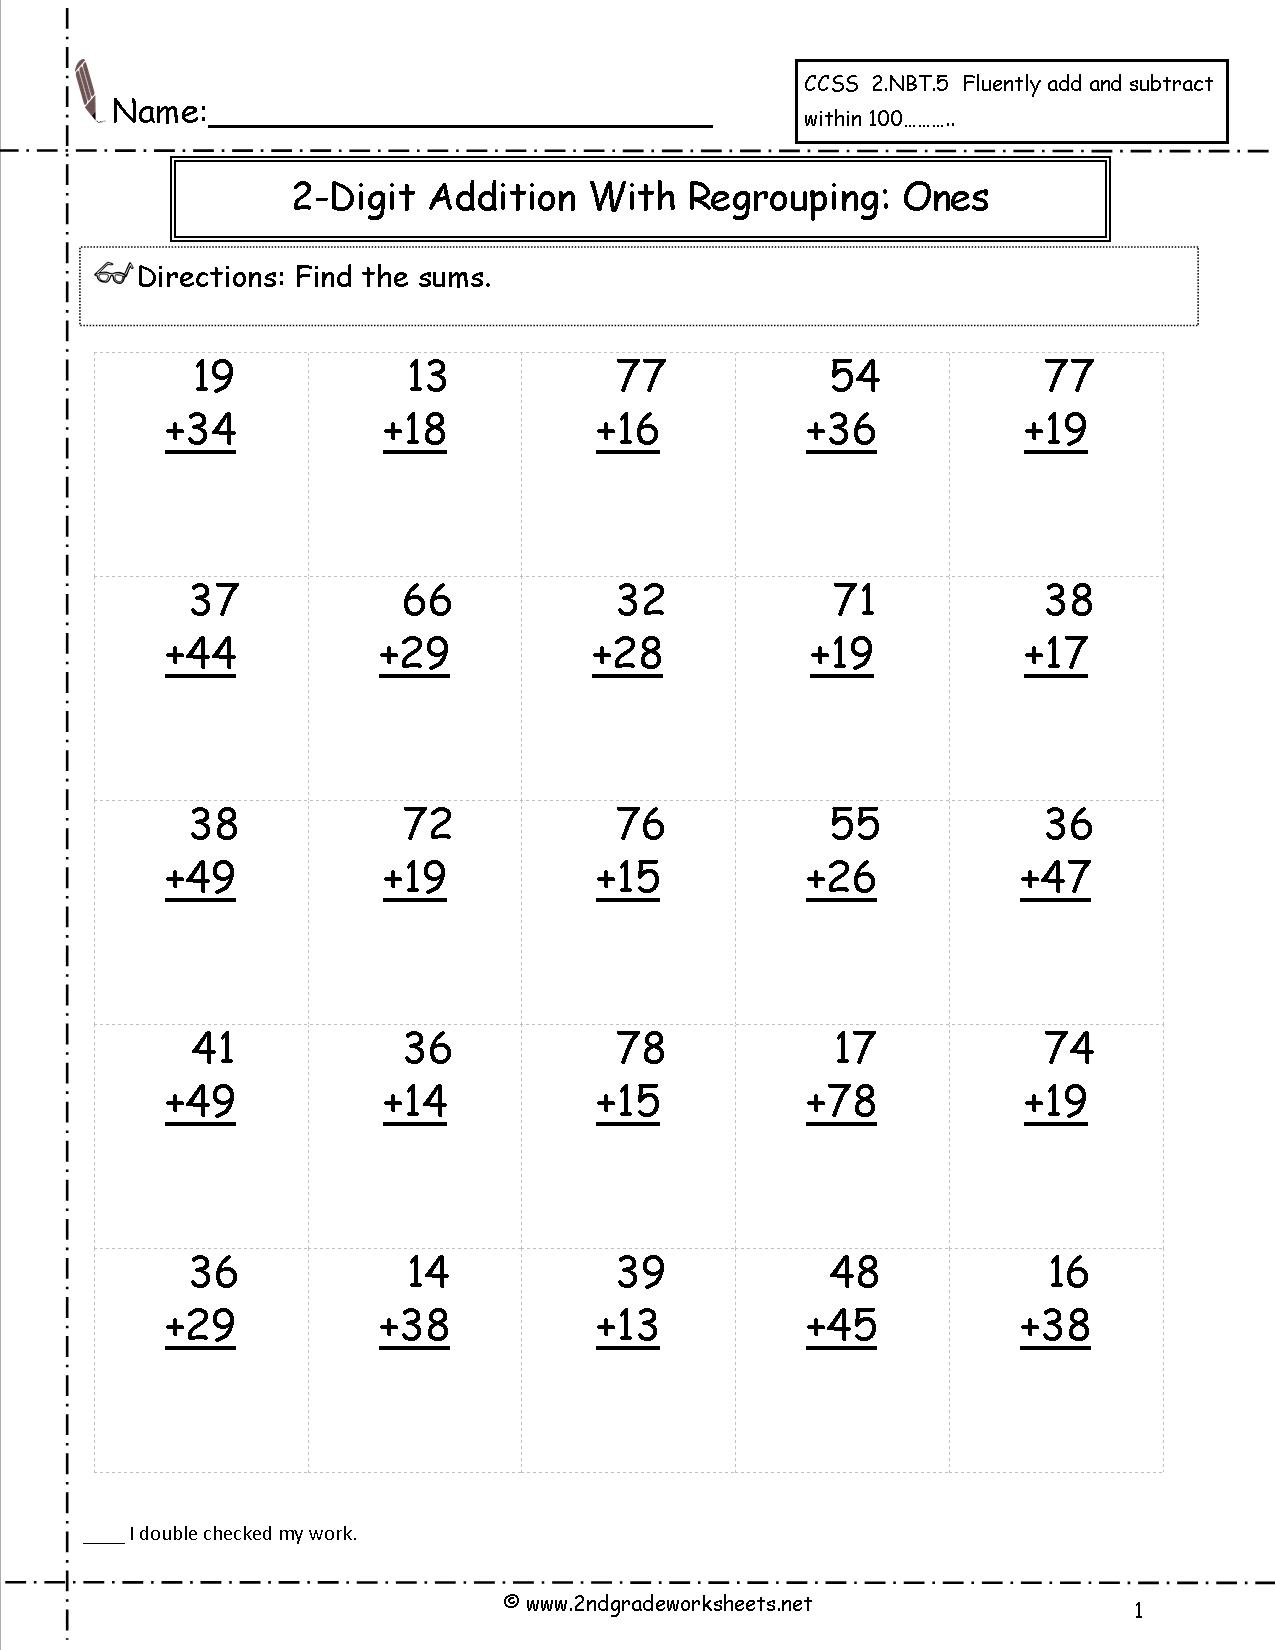 Free Math Worksheets And Printouts | Second Grade Printable Worksheets